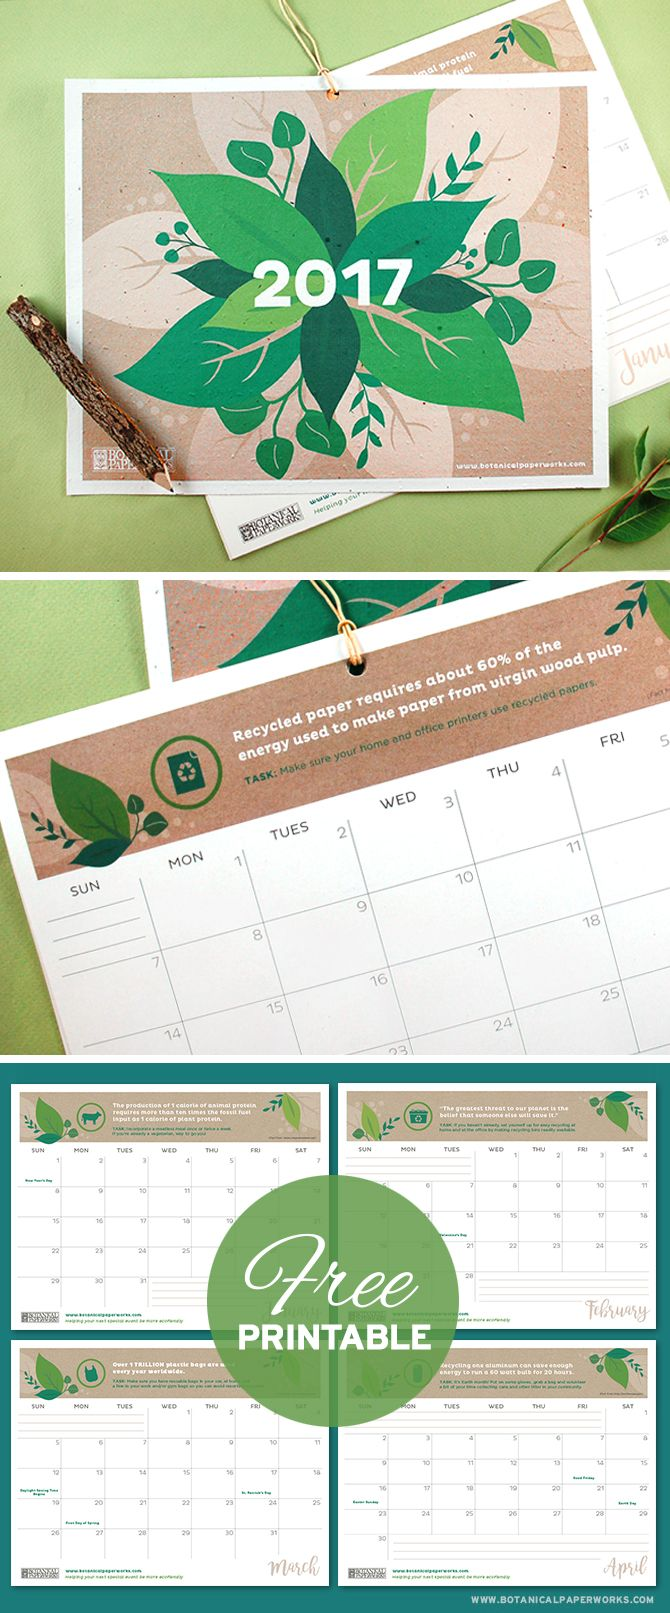 With facts, quotes and tips to help you live a more eco-friendly life, this vibrant #FreePrintable 2017 #EcoTips #Calendar is perfect for those who want to plan a greener future. Simply download and print the PDF at home!